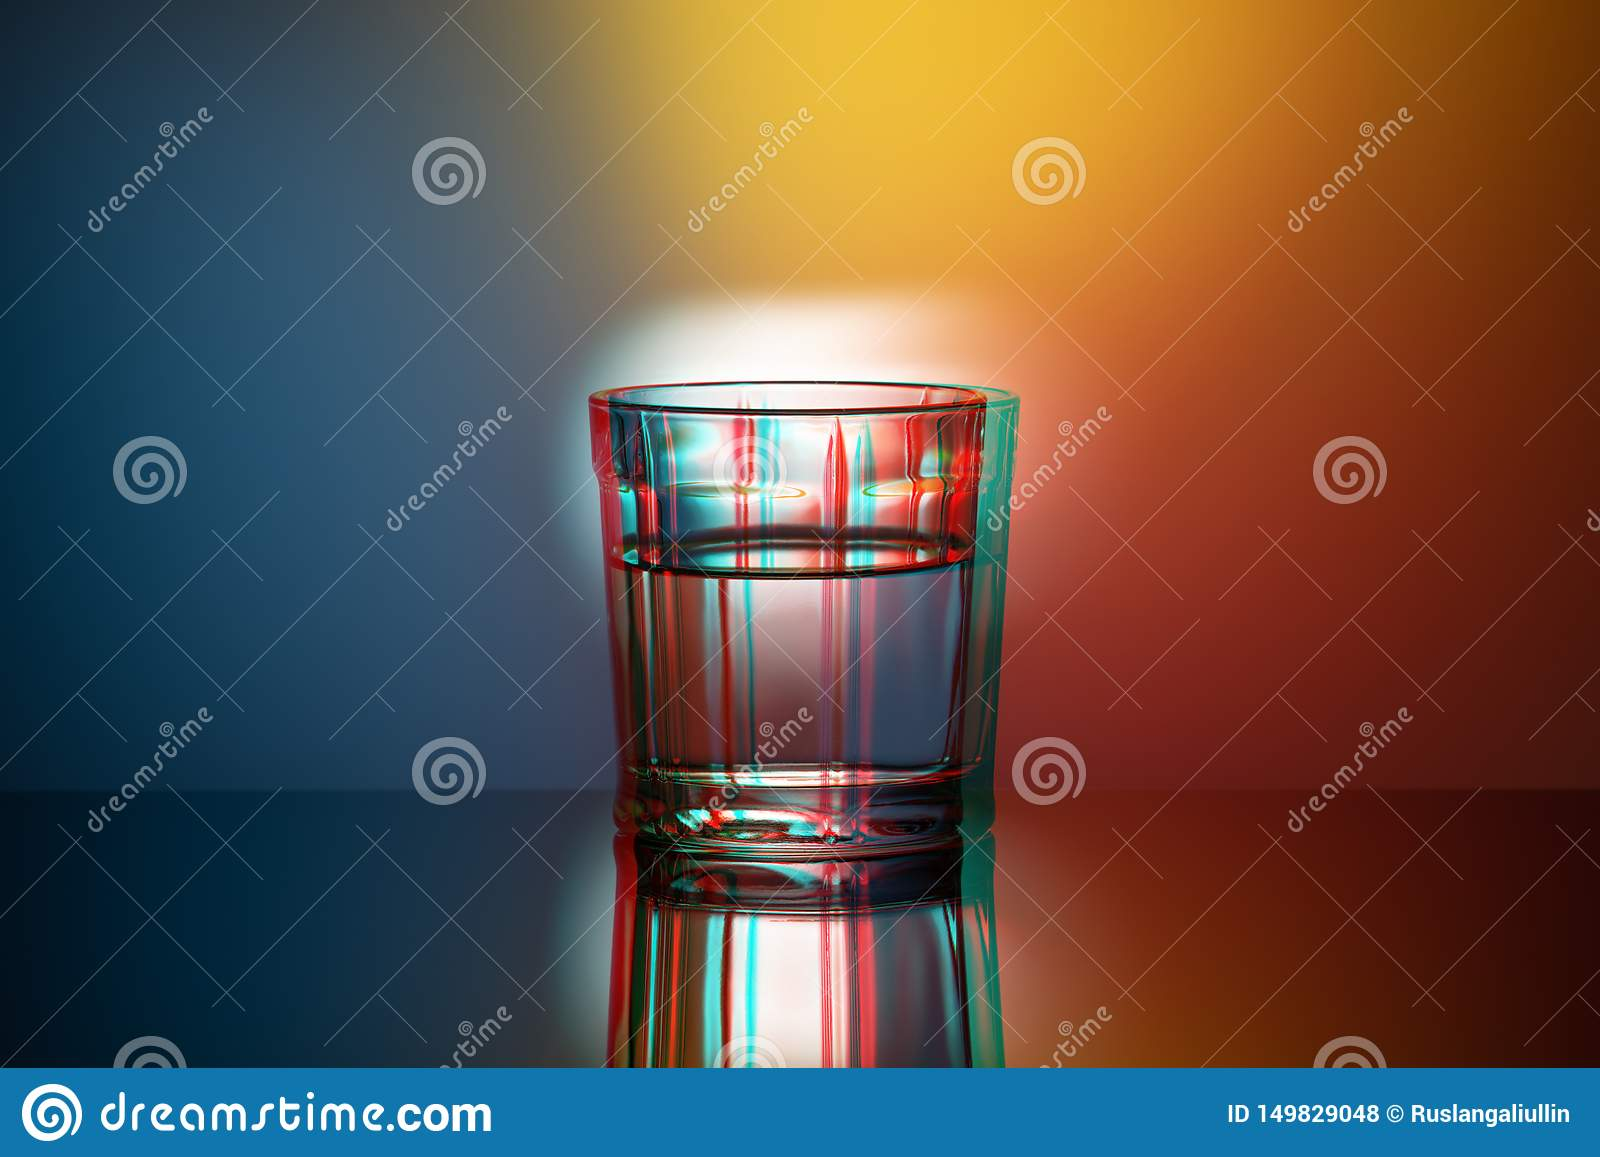 One glass Cup on a colored background, anaglyph, glitch effect, pop art